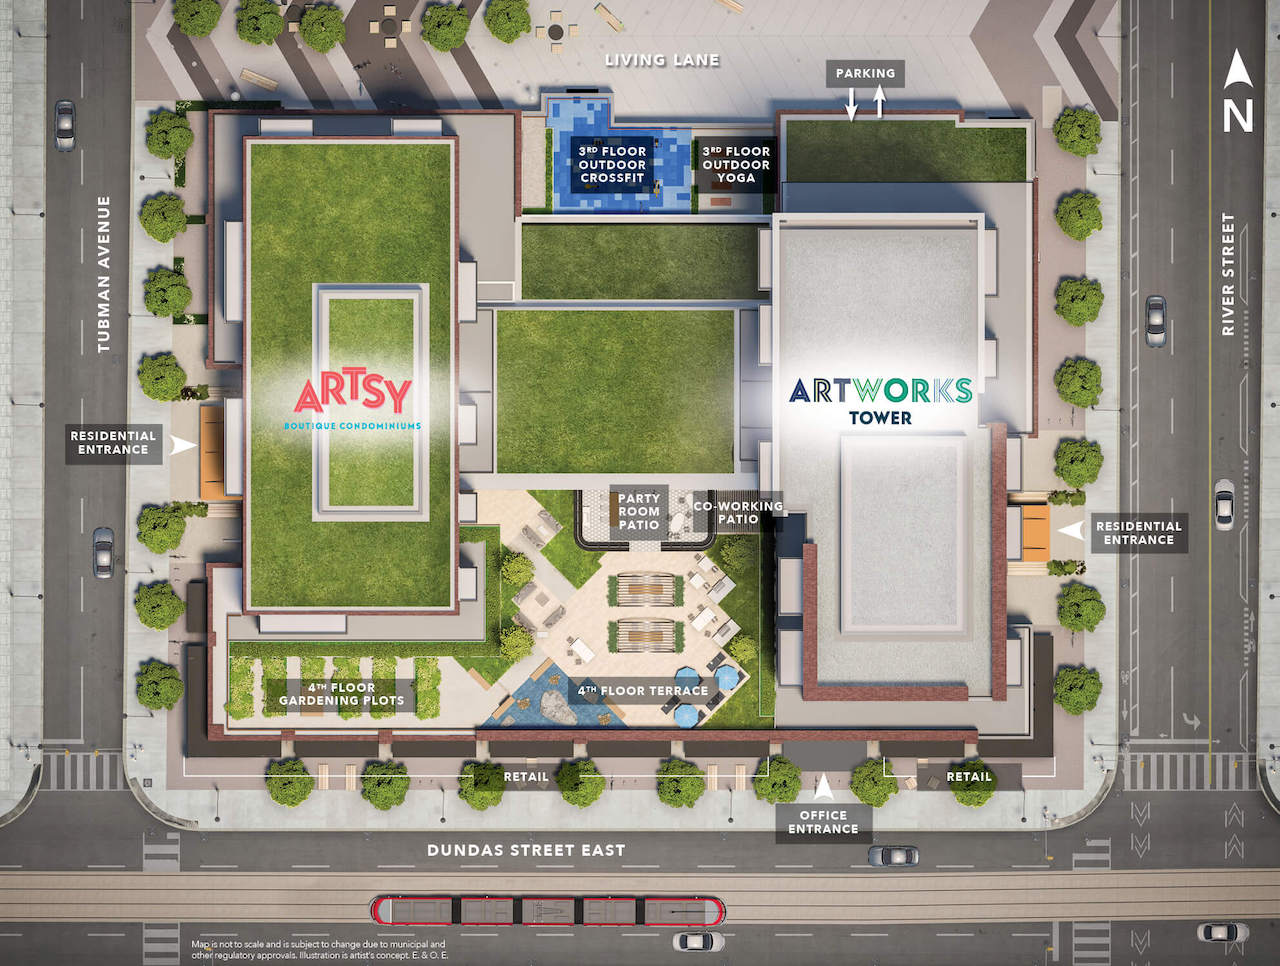 Site plan for Artsy Boutique Condominiums and Artworks Tower in Toronto.